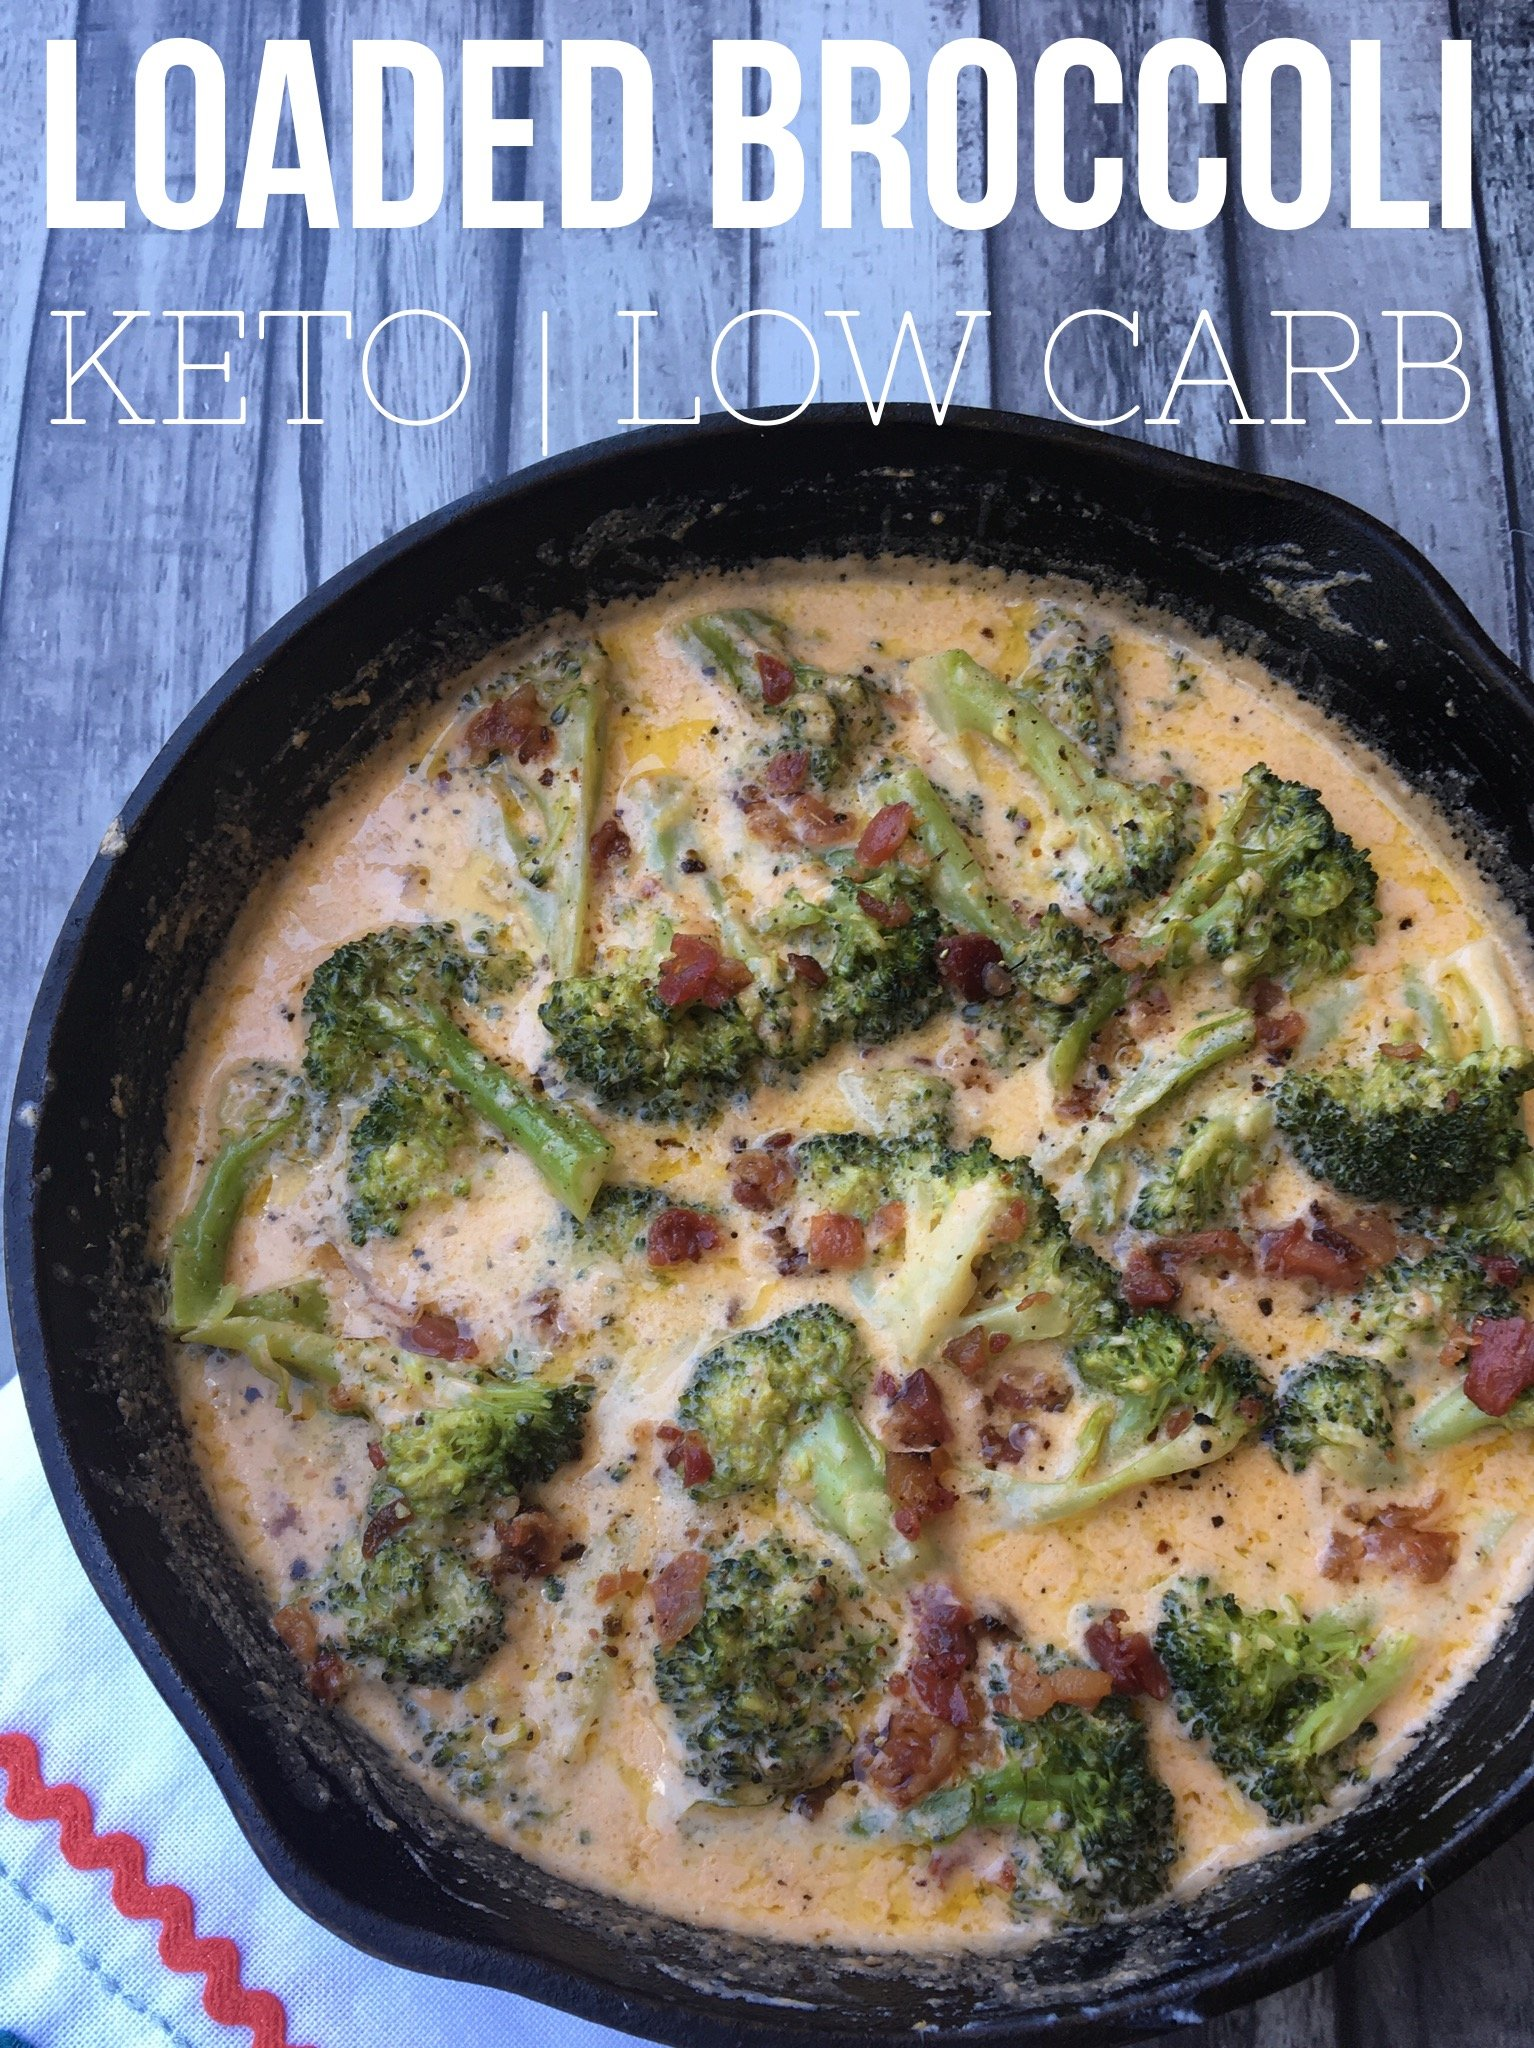 Loaded broccoli Keto/Low Carb